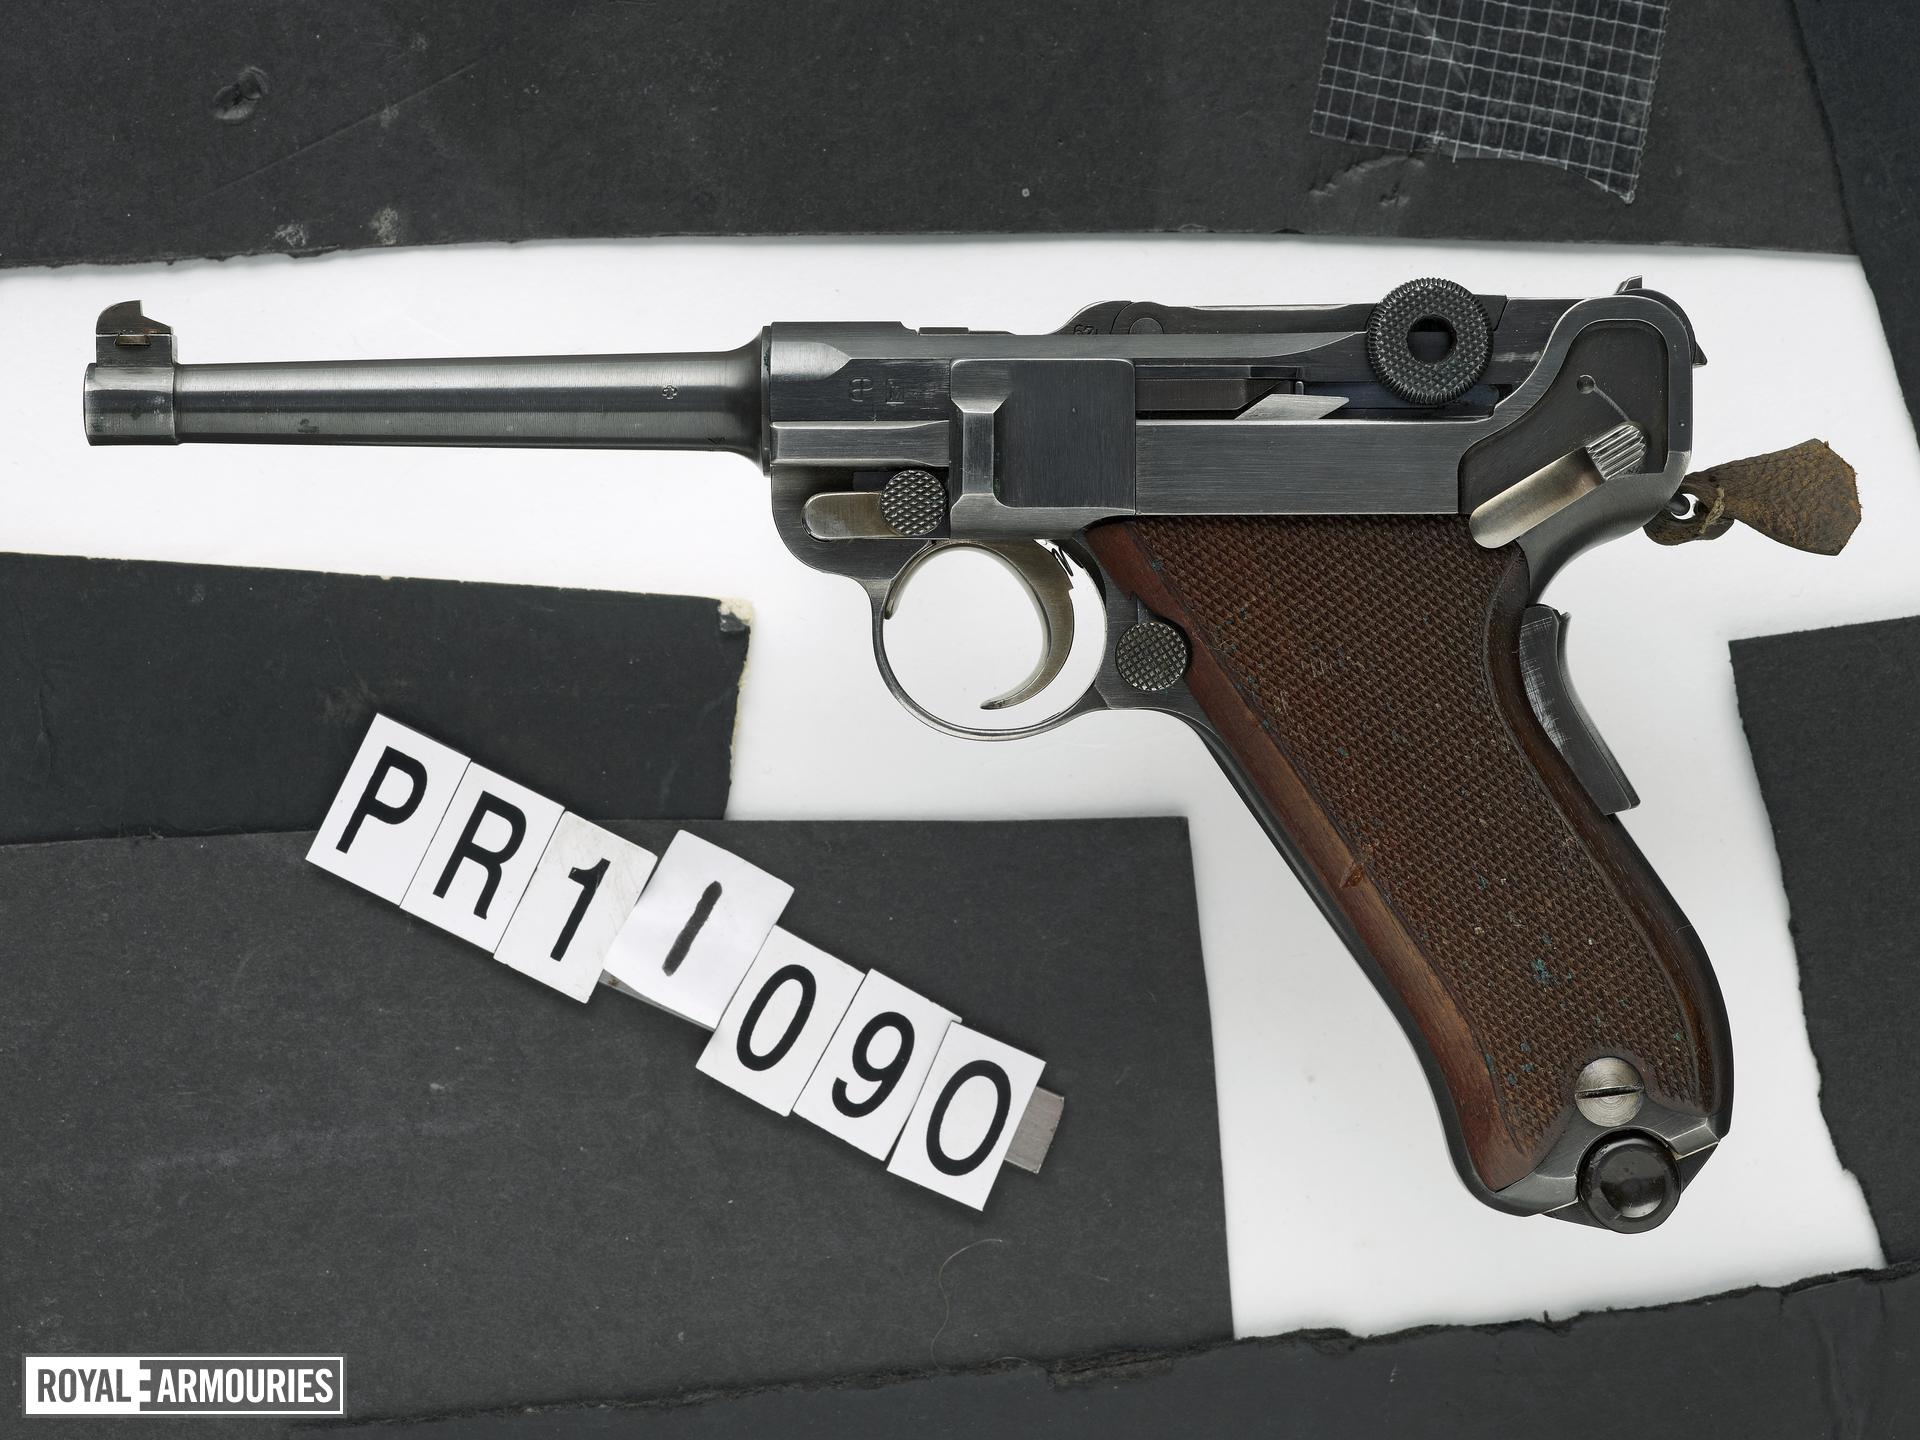 Centrefire self-loading pistol - Luger Miltary Model 1906